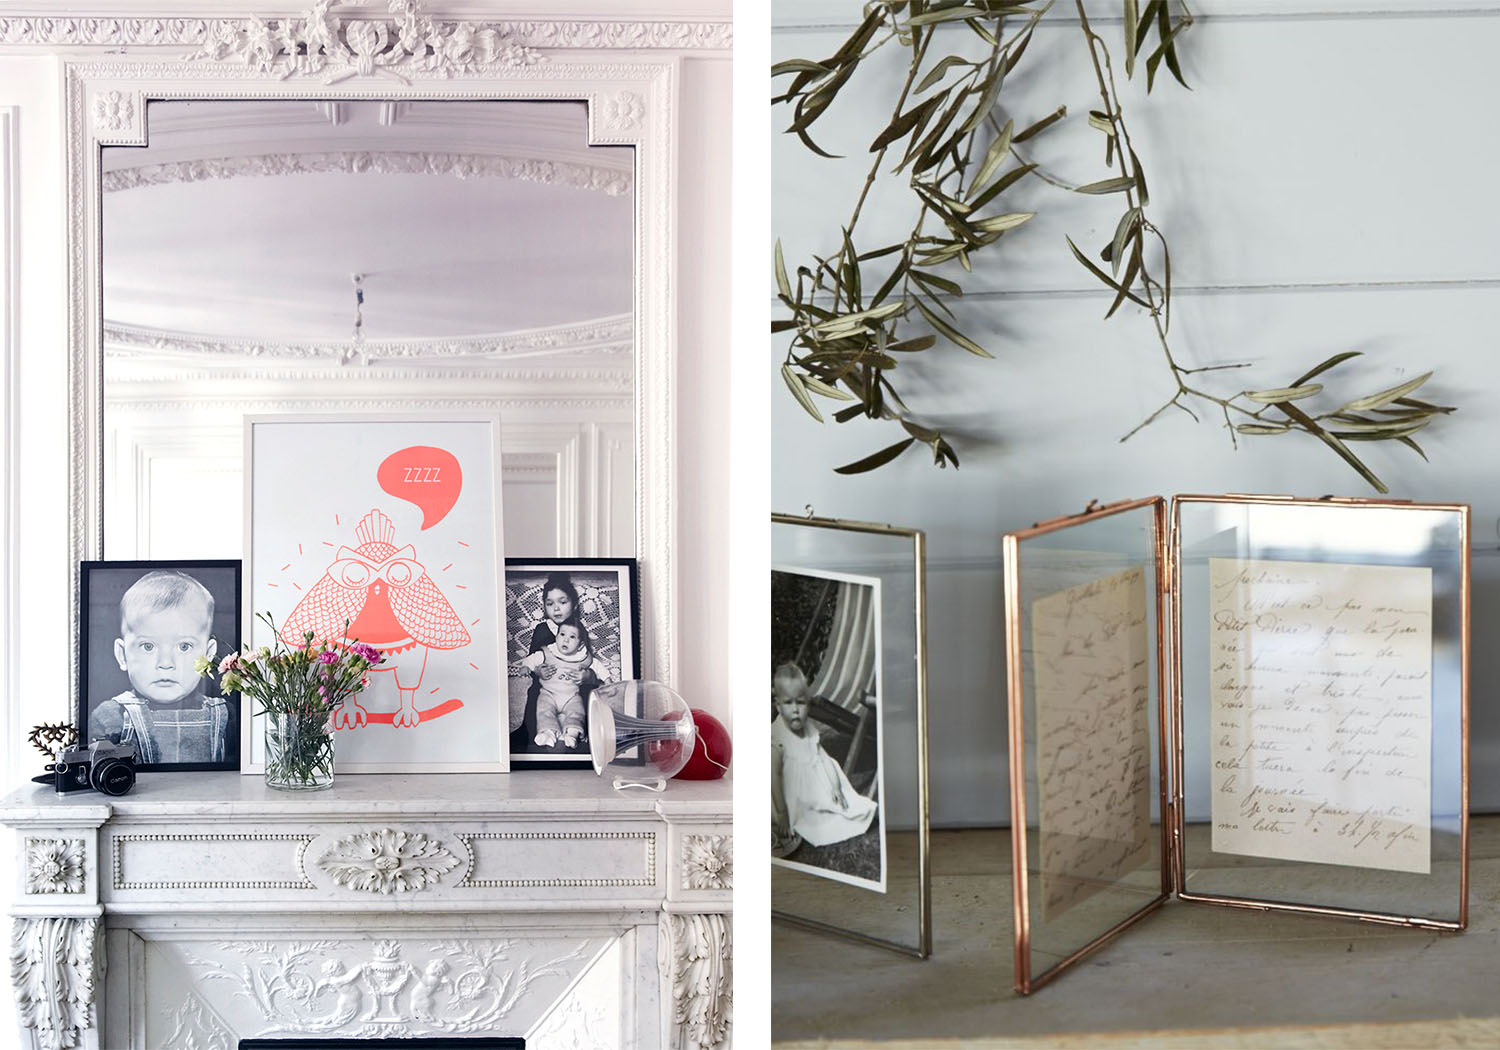 Colorful or black and white artworks and handwritten letters add a personal touch to a stark space.